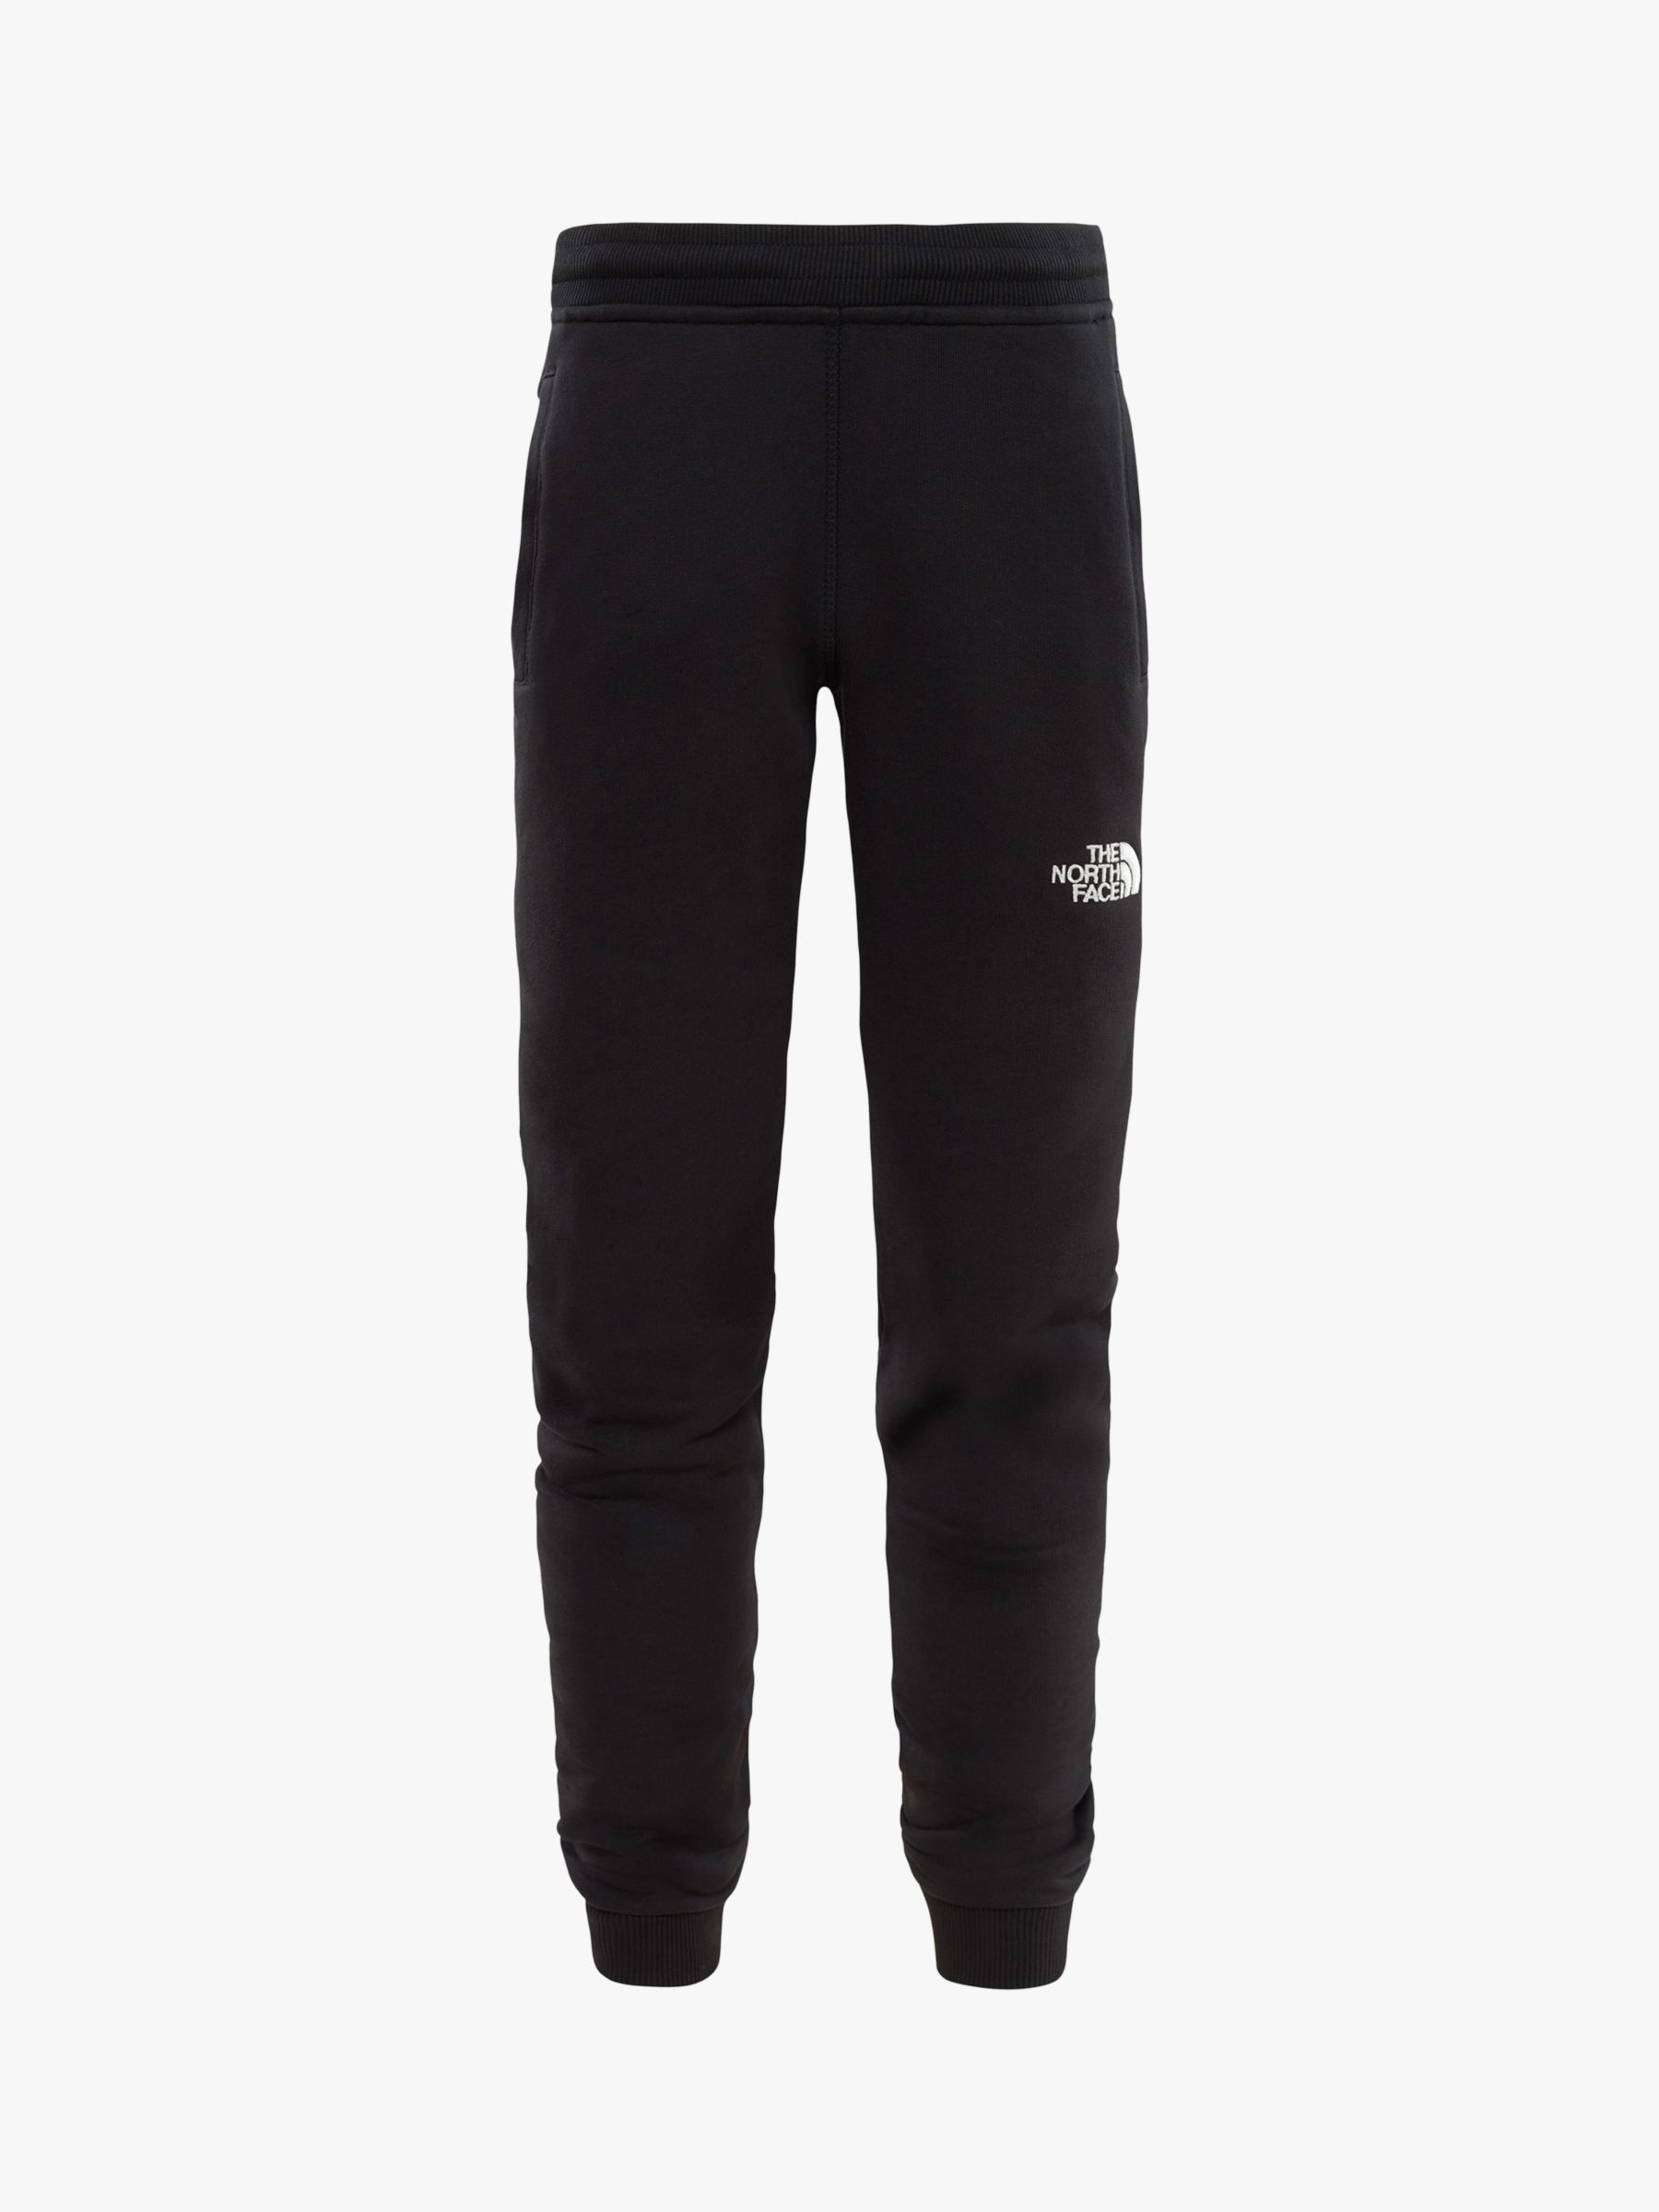 The North Face The North Face Boys' Fleece Joggers, Black